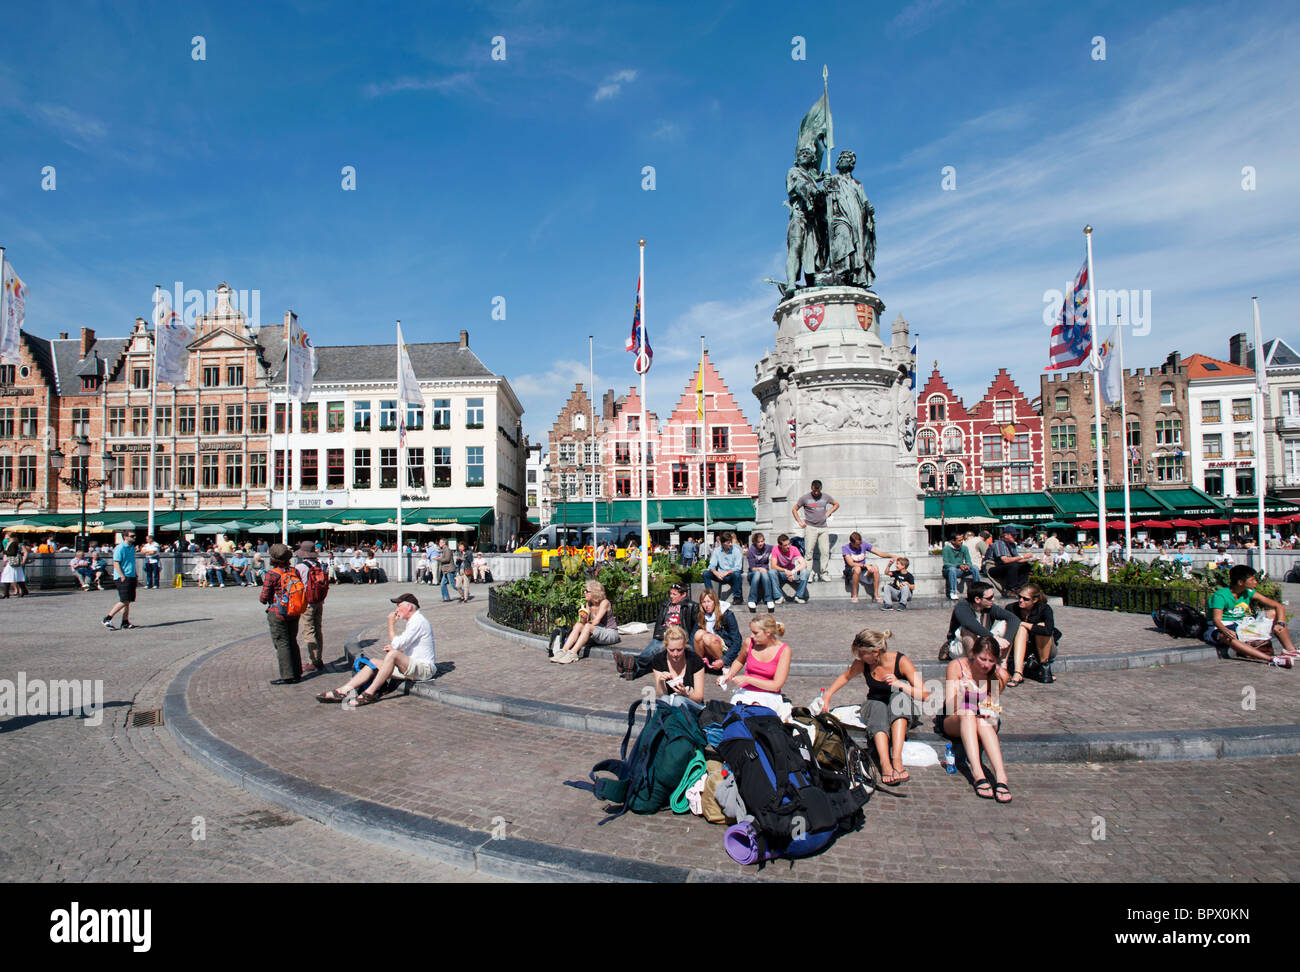 Tourists sitting in the famous historic Market Square in Bruges in Belgium - Stock Image